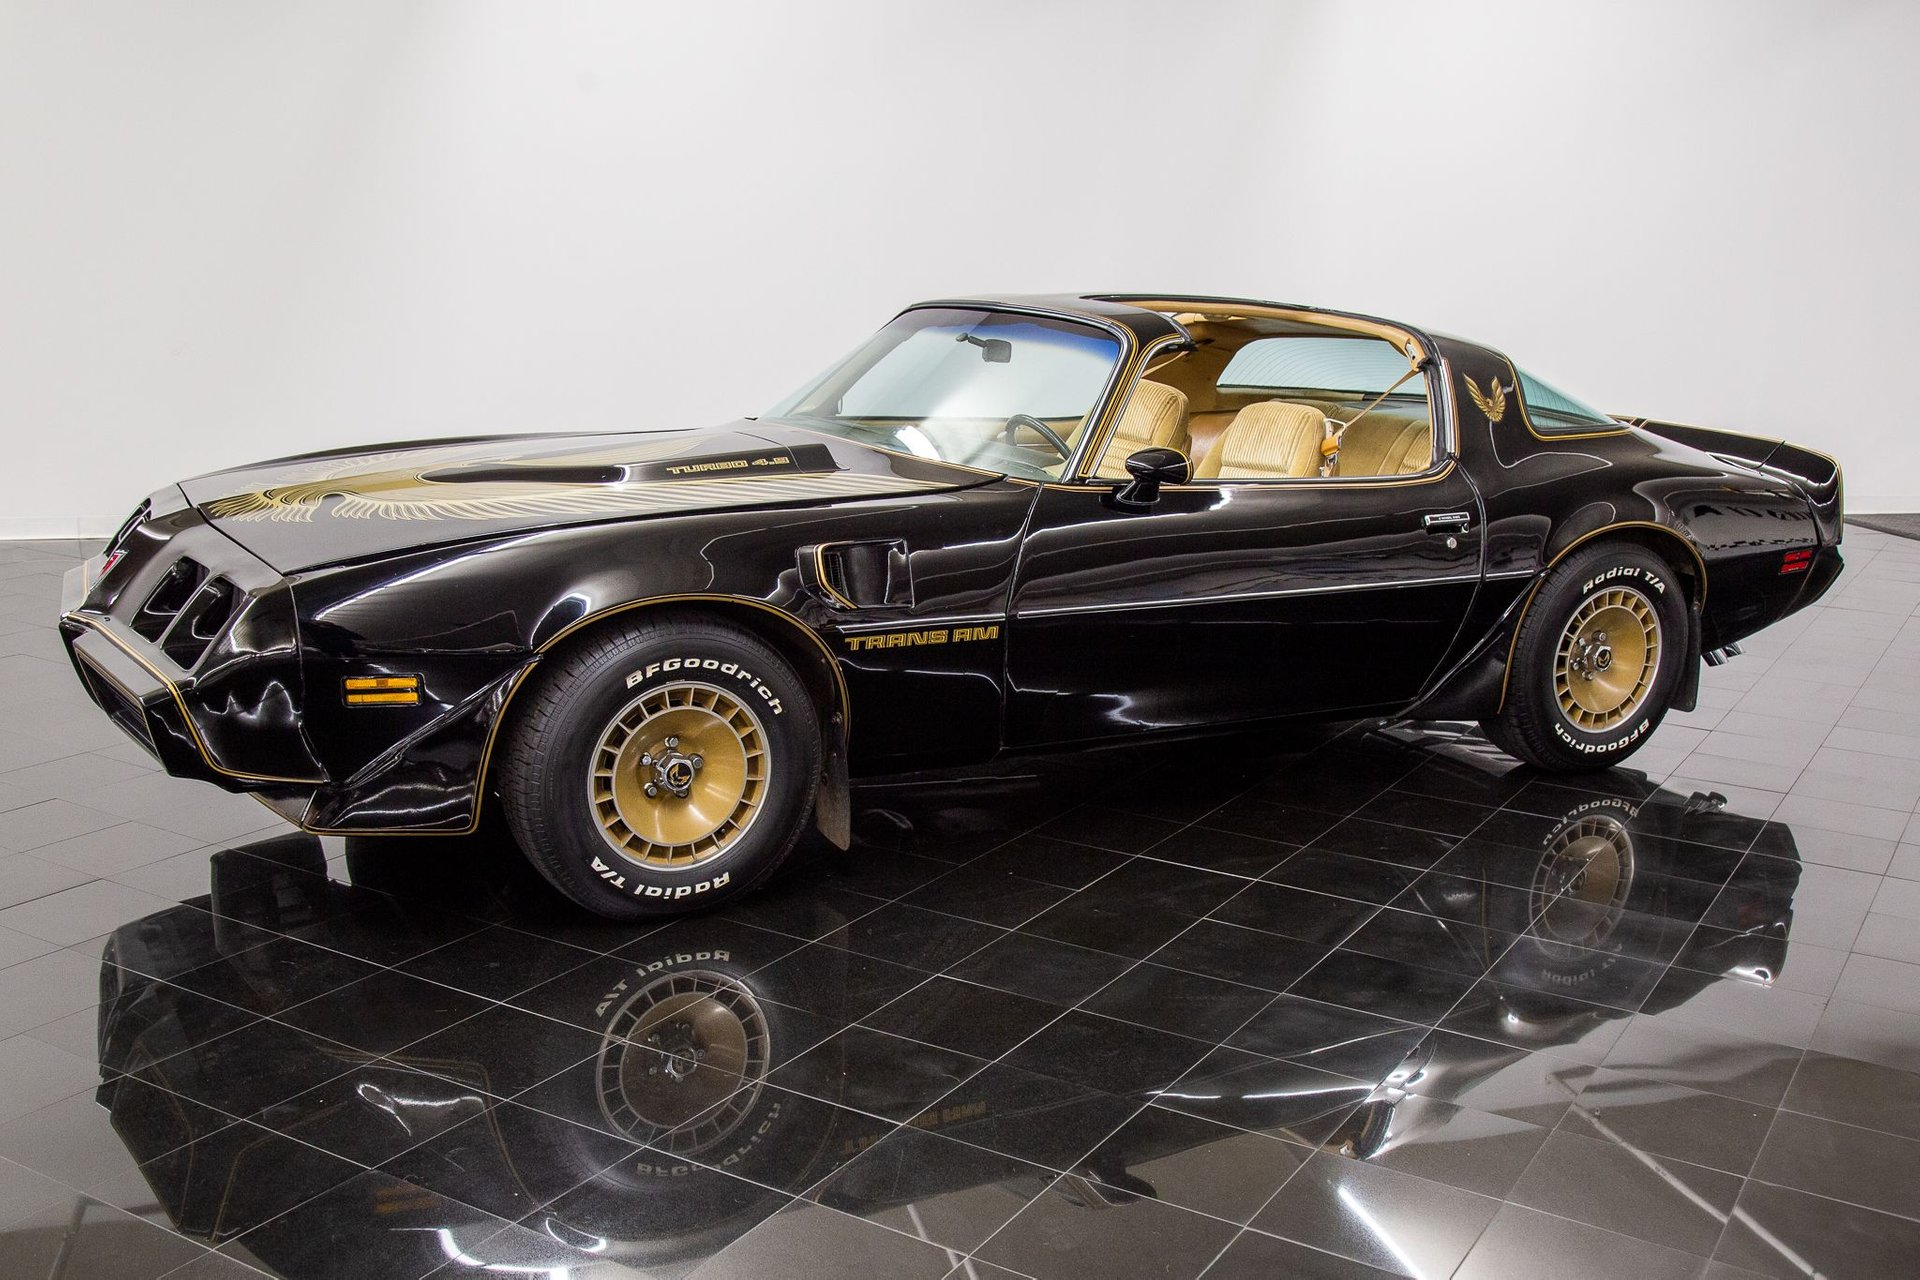 1981 pontiac turbo trans am ws6 t top